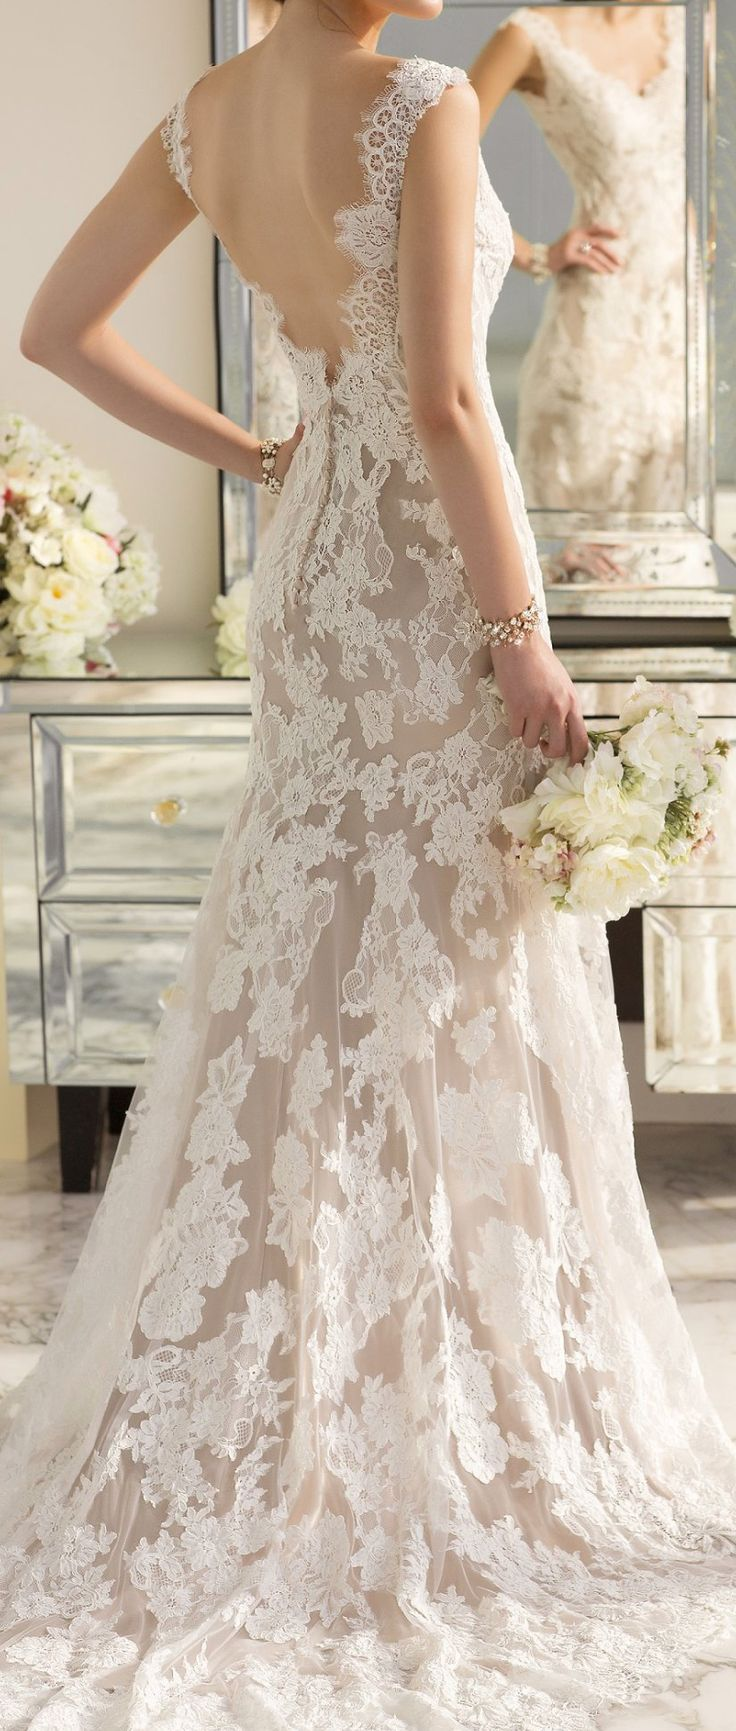 Beautiful lace with an almost dual-tone to really make it pop. Not sure if I'd want lace ALL over, but it's a beautiful statement  pronoviasweddingdress.com